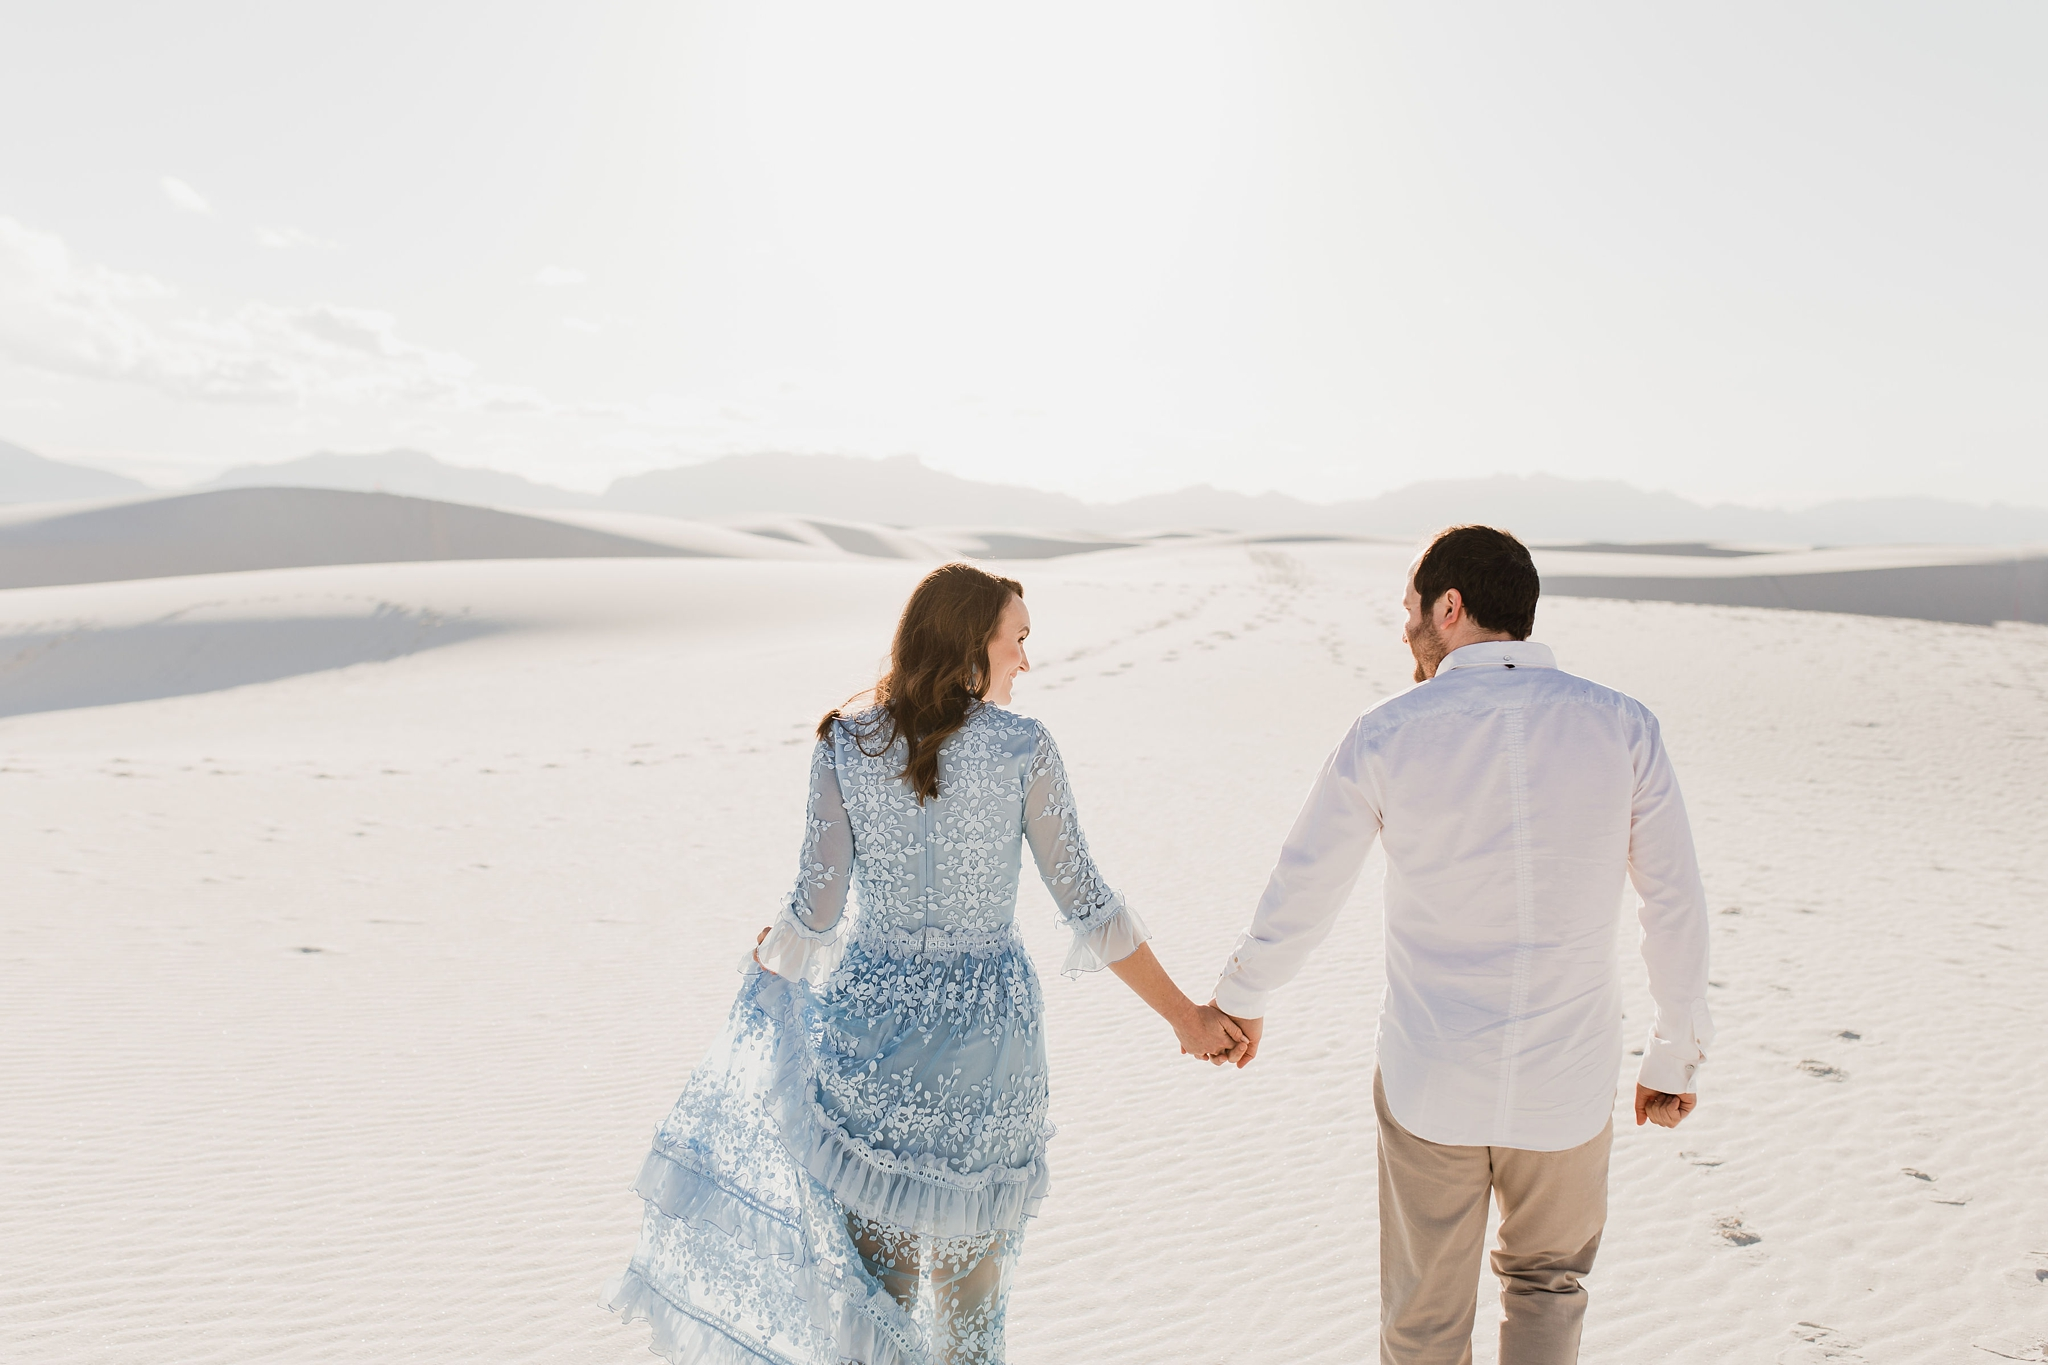 Alicia+lucia+photography+-+albuquerque+wedding+photographer+-+santa+fe+wedding+photography+-+new+mexico+wedding+photographer+-+new+mexico+wedding+-+new+mexico+engagement+-+white+sands+engagement+-+white+sands+national+monument_0013.jpg